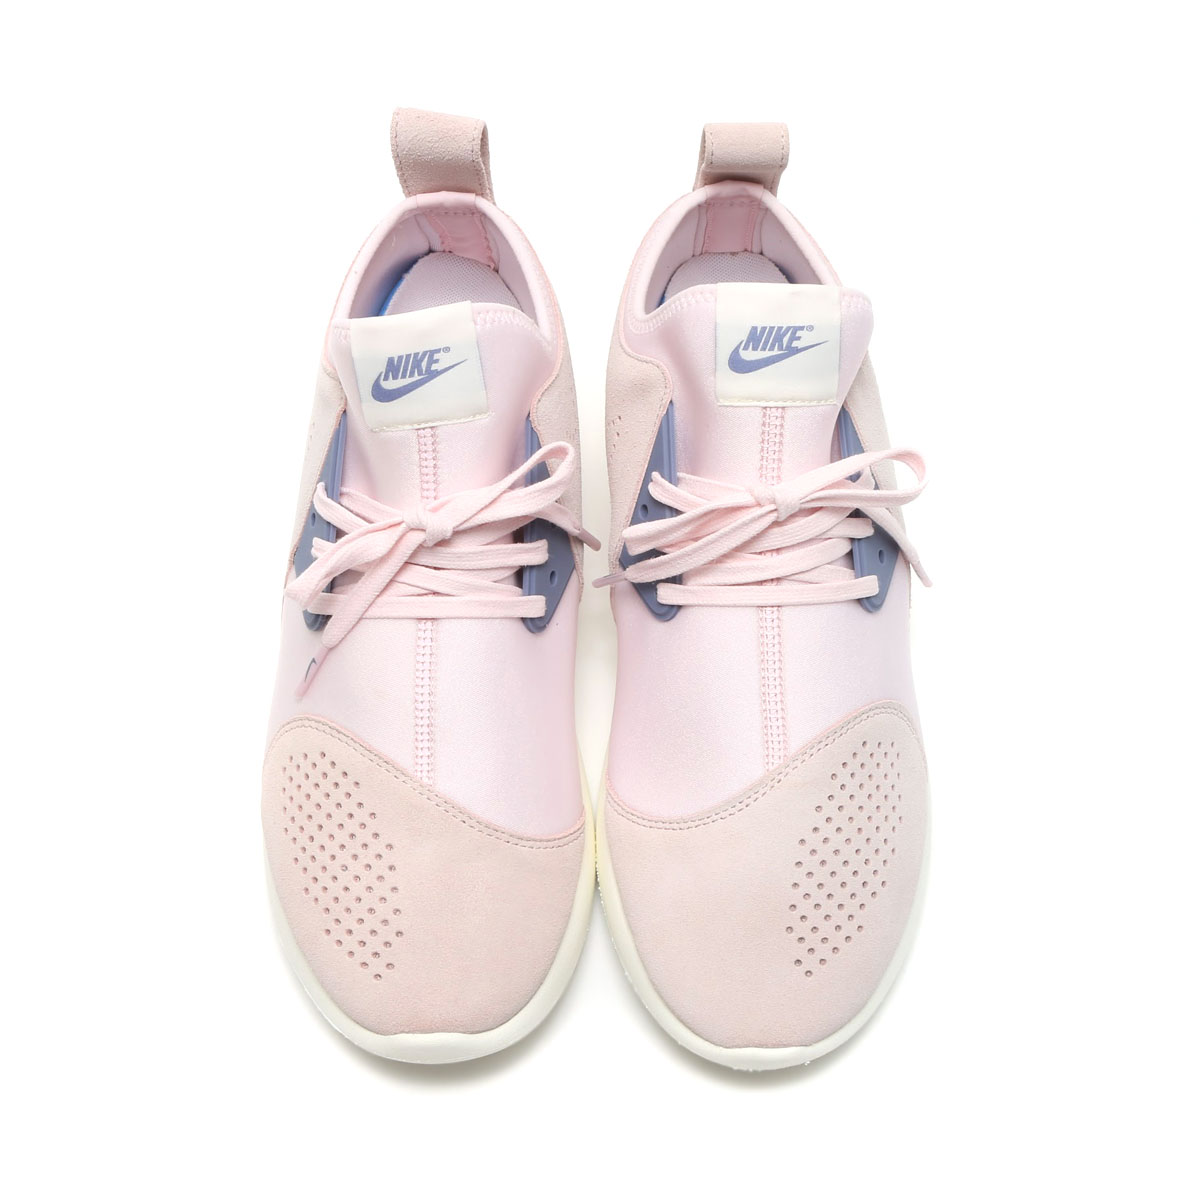 NIKE LUNARCHARGE PREMIUM (나이키 루나 요금 프리미엄) (SILT RED/DARK SKY BLUE-PEARL PINK) 17 SU-S